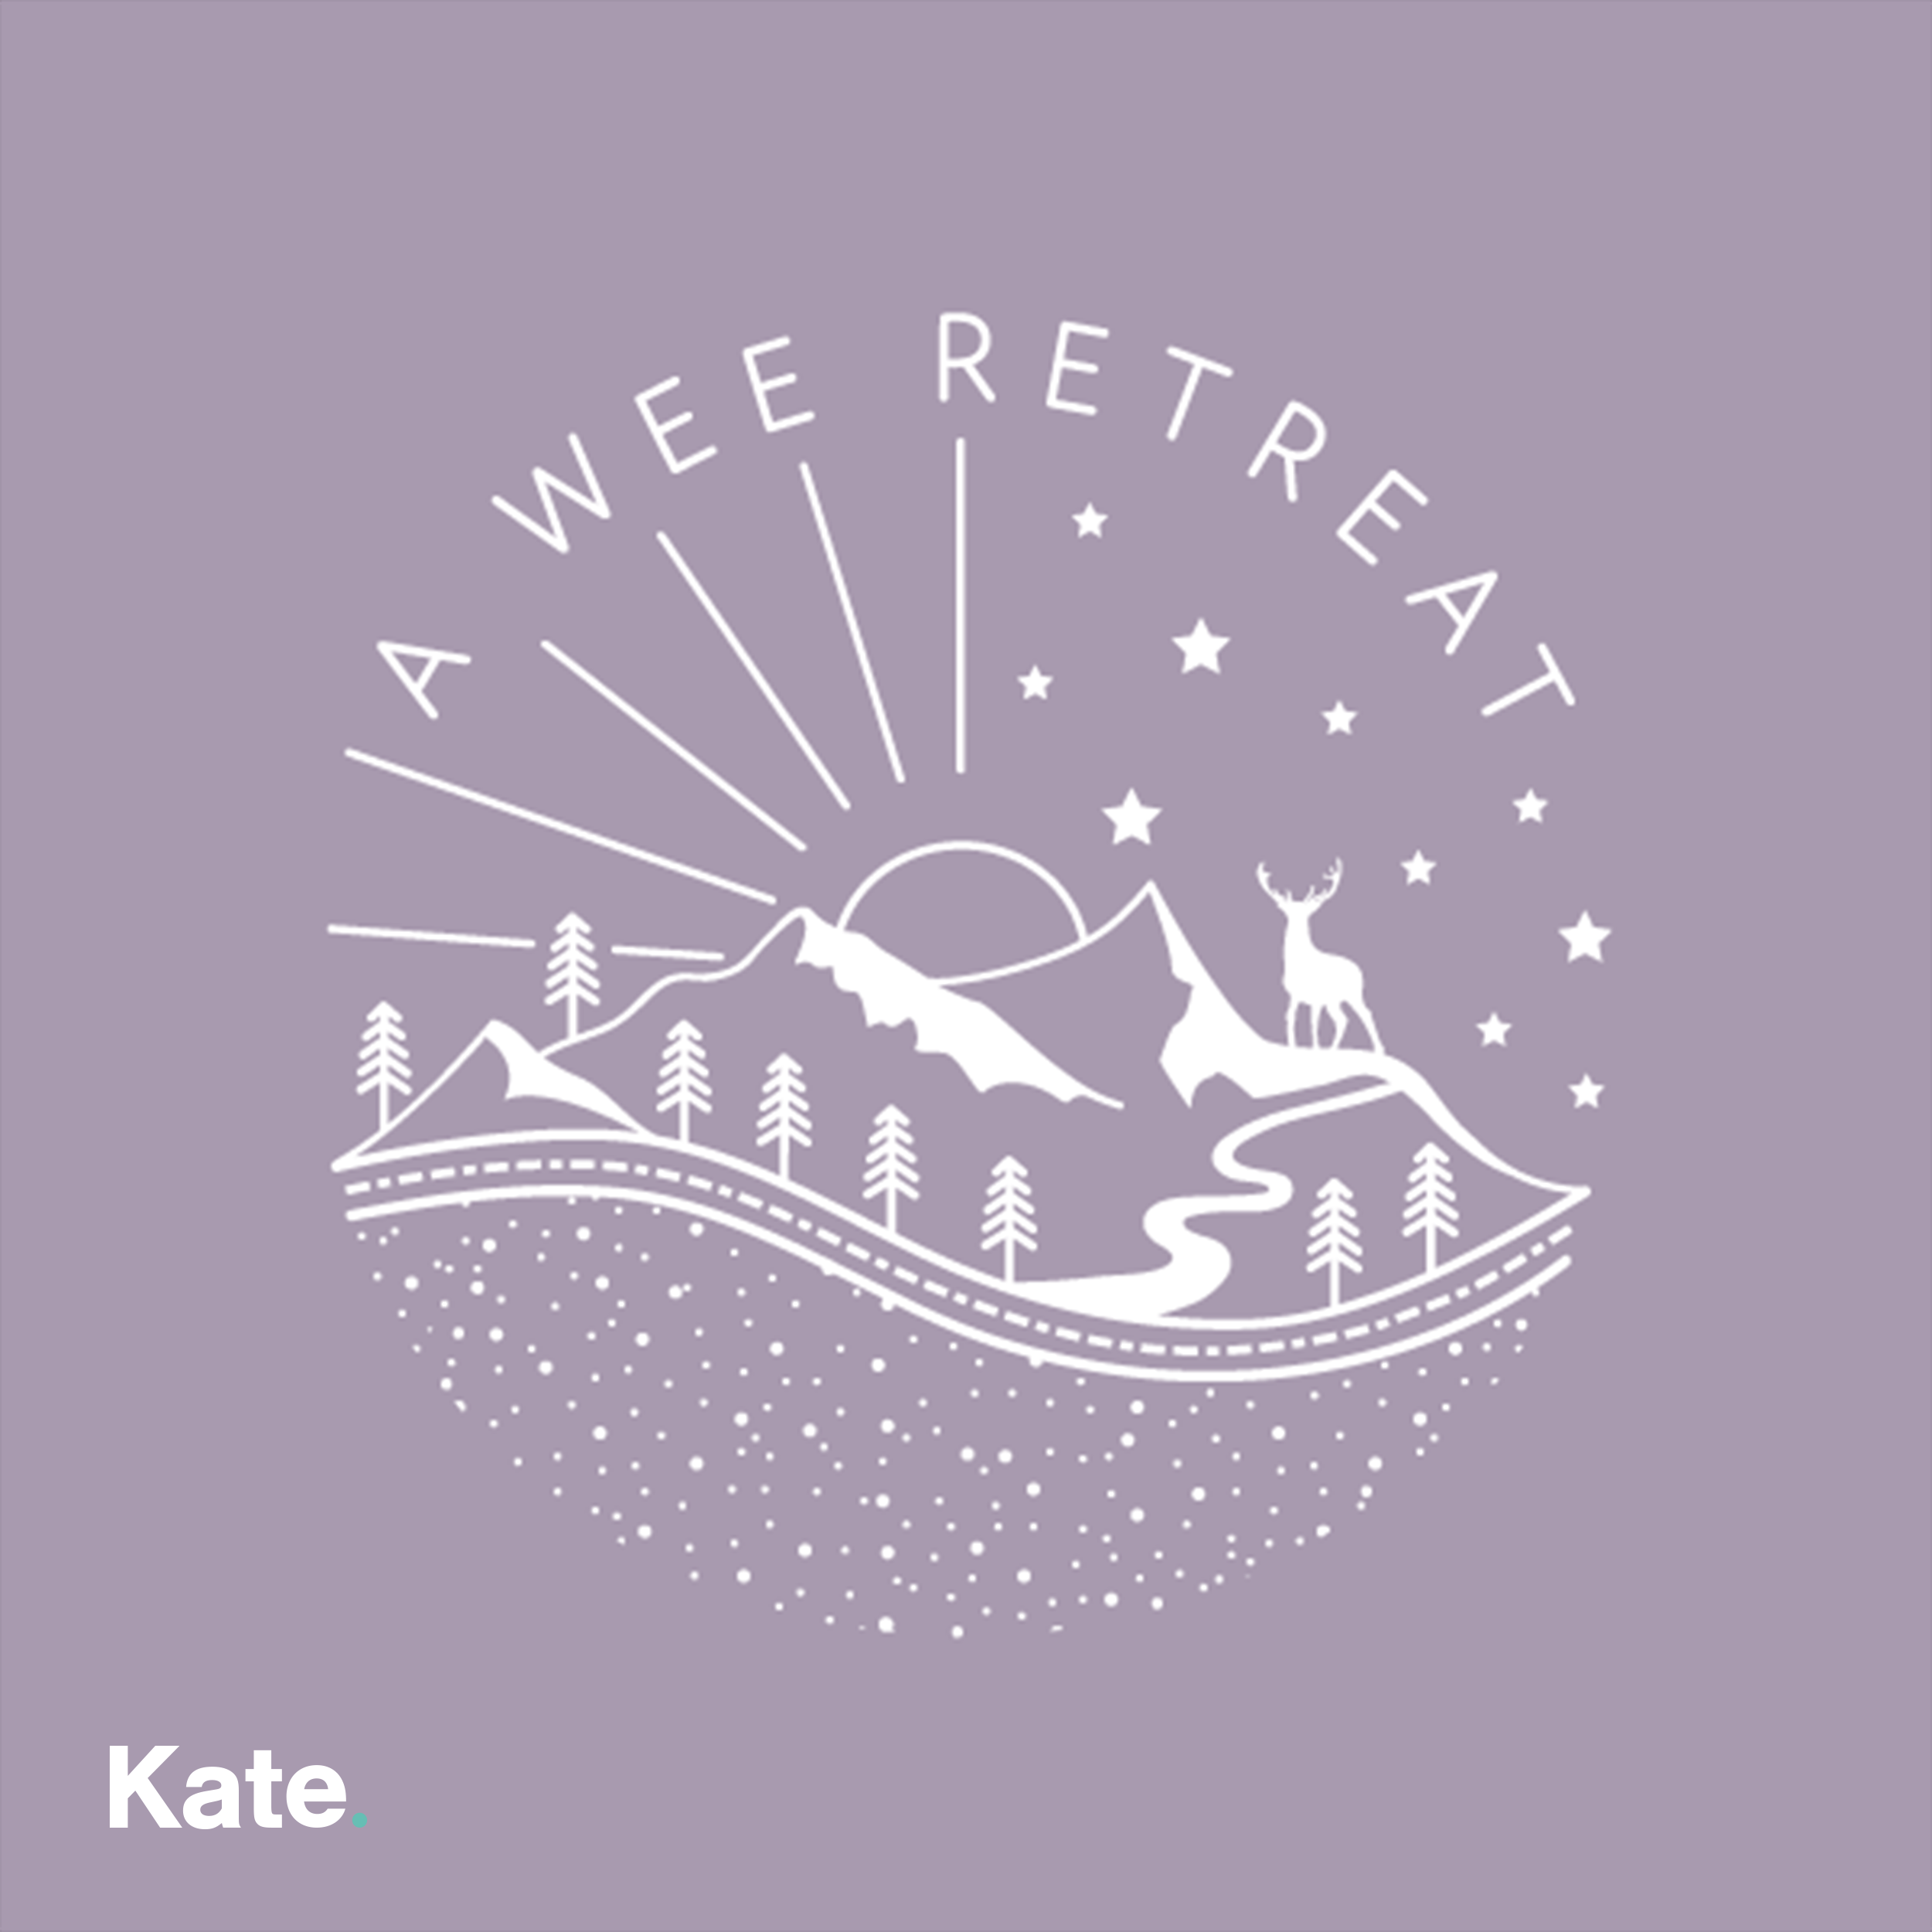 A Wee Retreat Logo